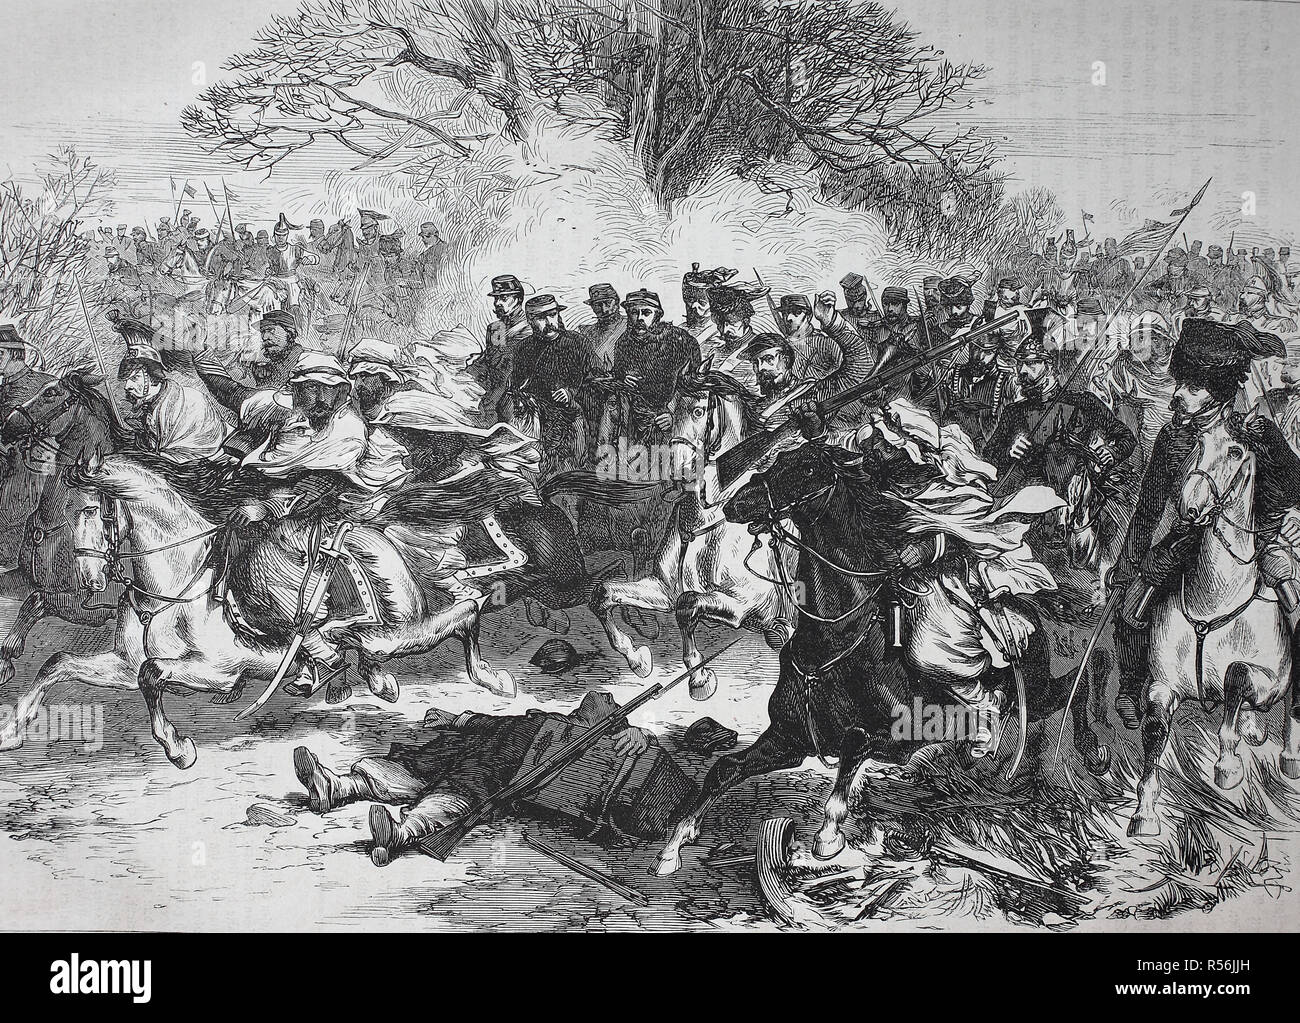 Withdrawal of the French cavalry after the Battle of Orleans, France, German-French campaign of 1870/1871, woodcut, France - Stock Image